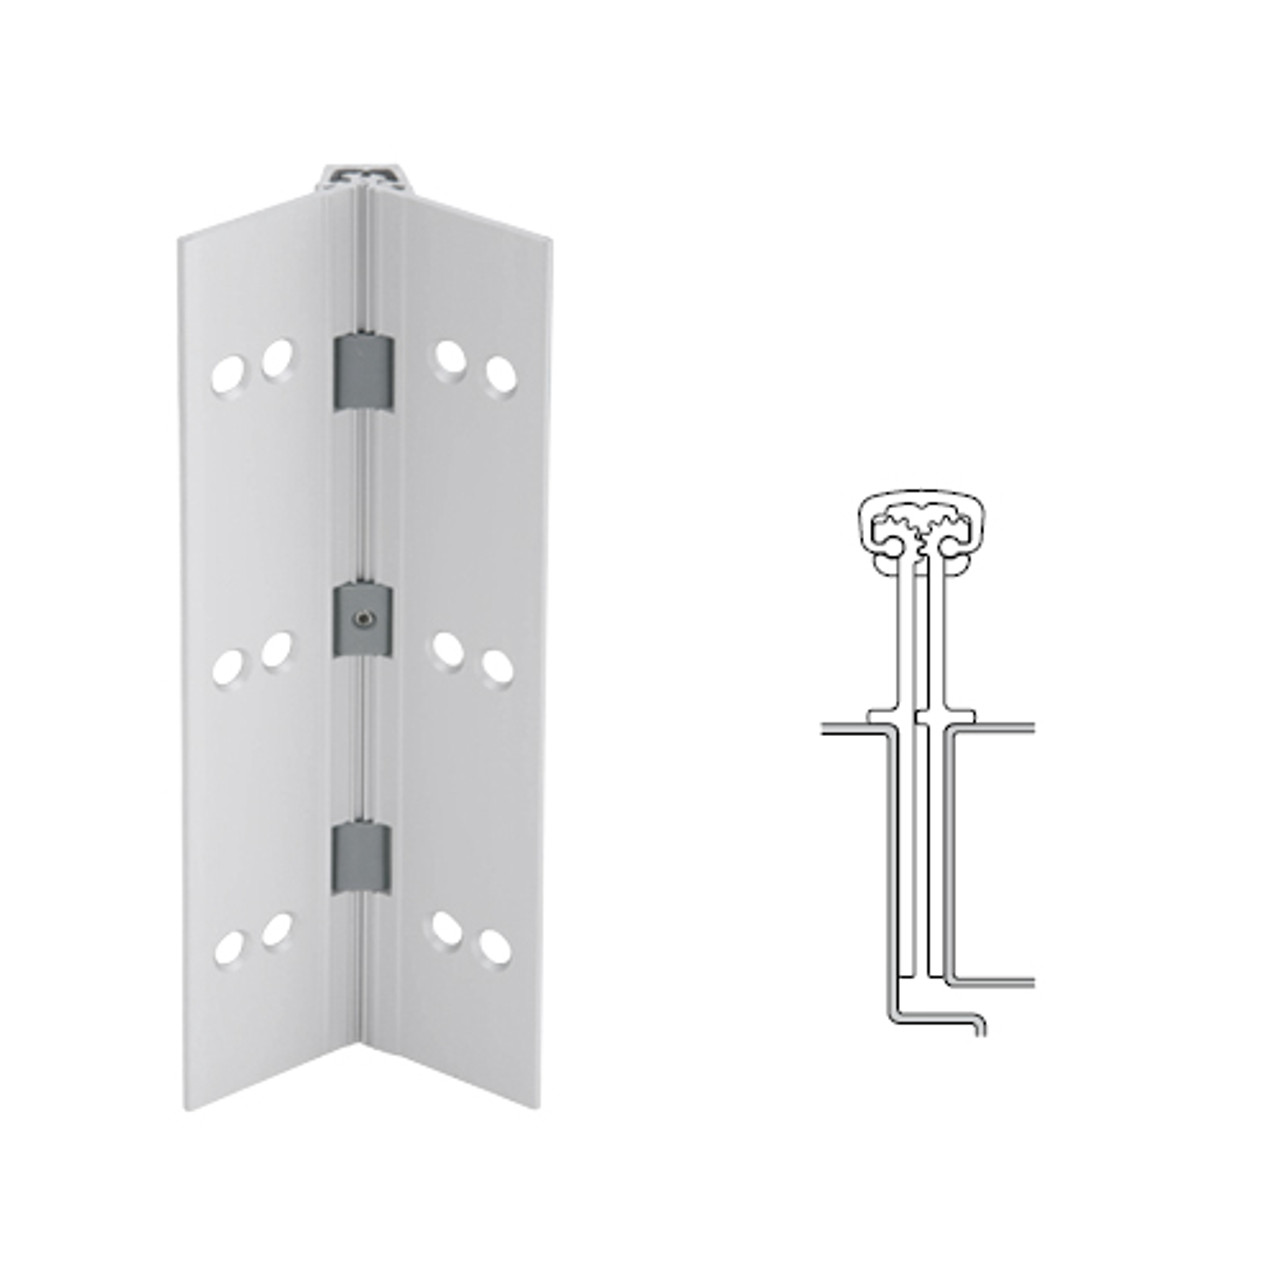 040XY-US28-85-SECHM IVES Full Mortise Continuous Geared Hinges with Security Screws - Hex Pin Drive in Satin Aluminum